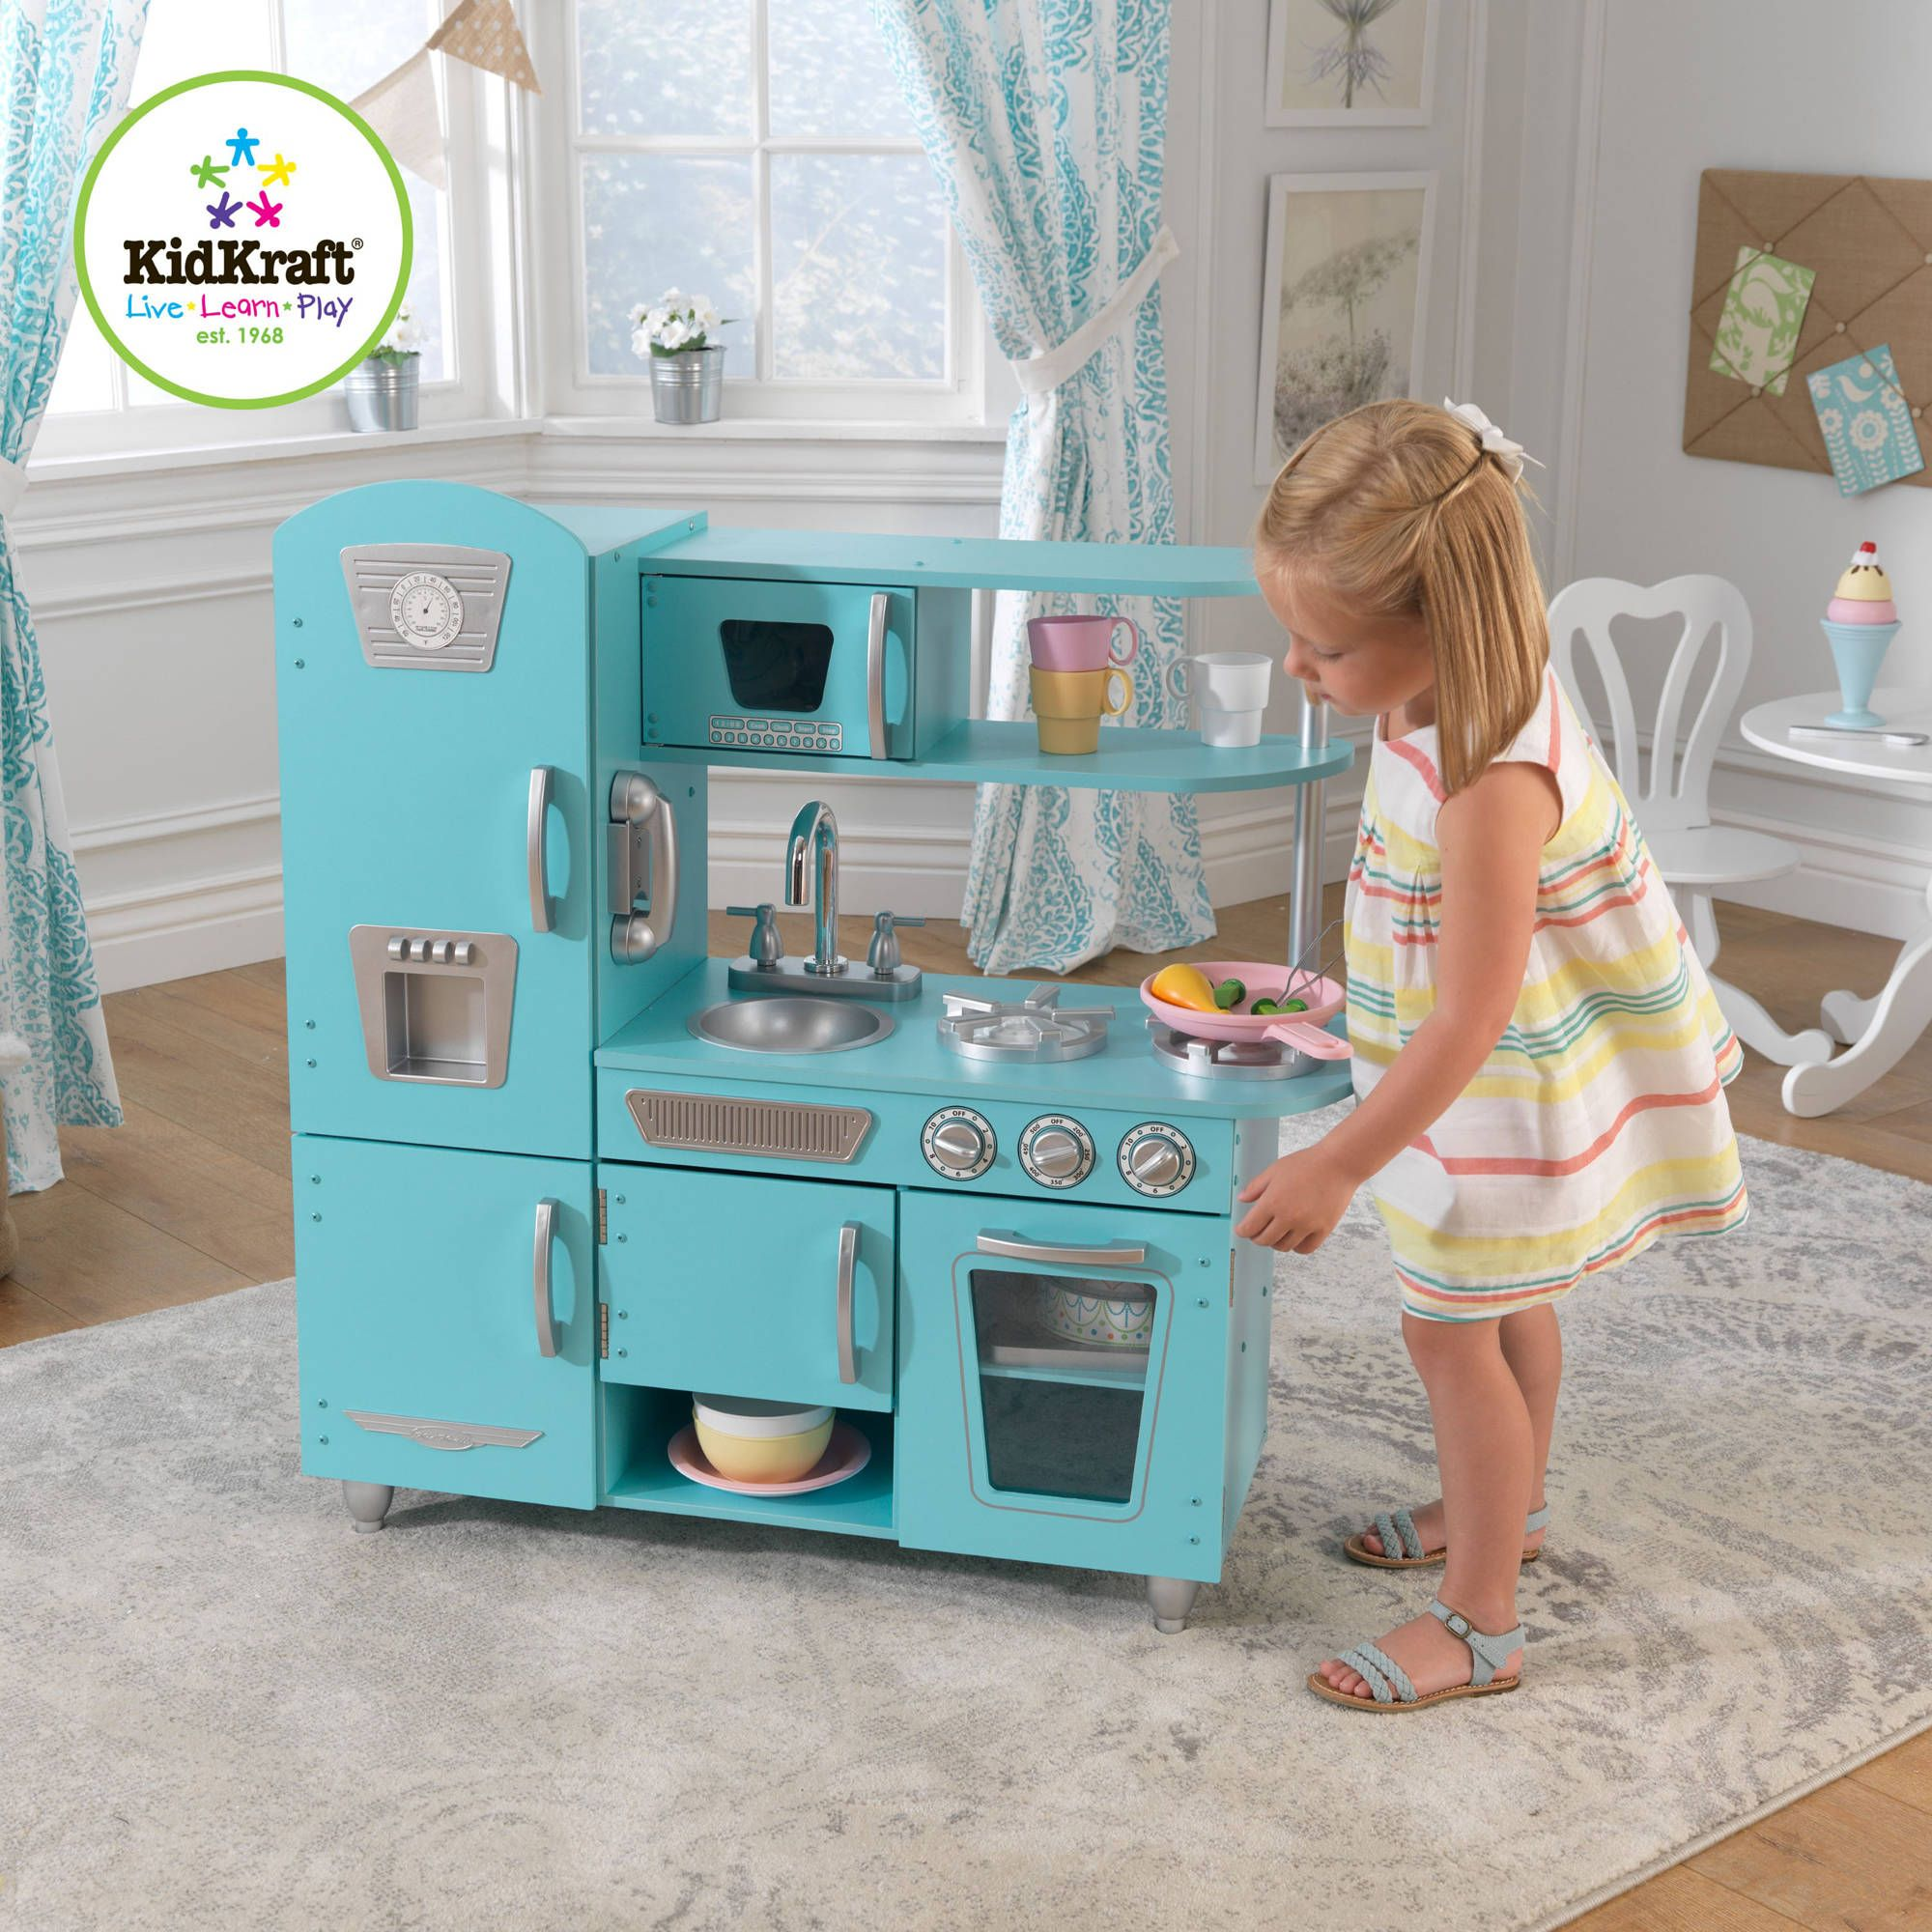 Kidkraft Wooden Play Kitchen kidkraft vintage wooden play kitchen in pink | wooden play kitchen